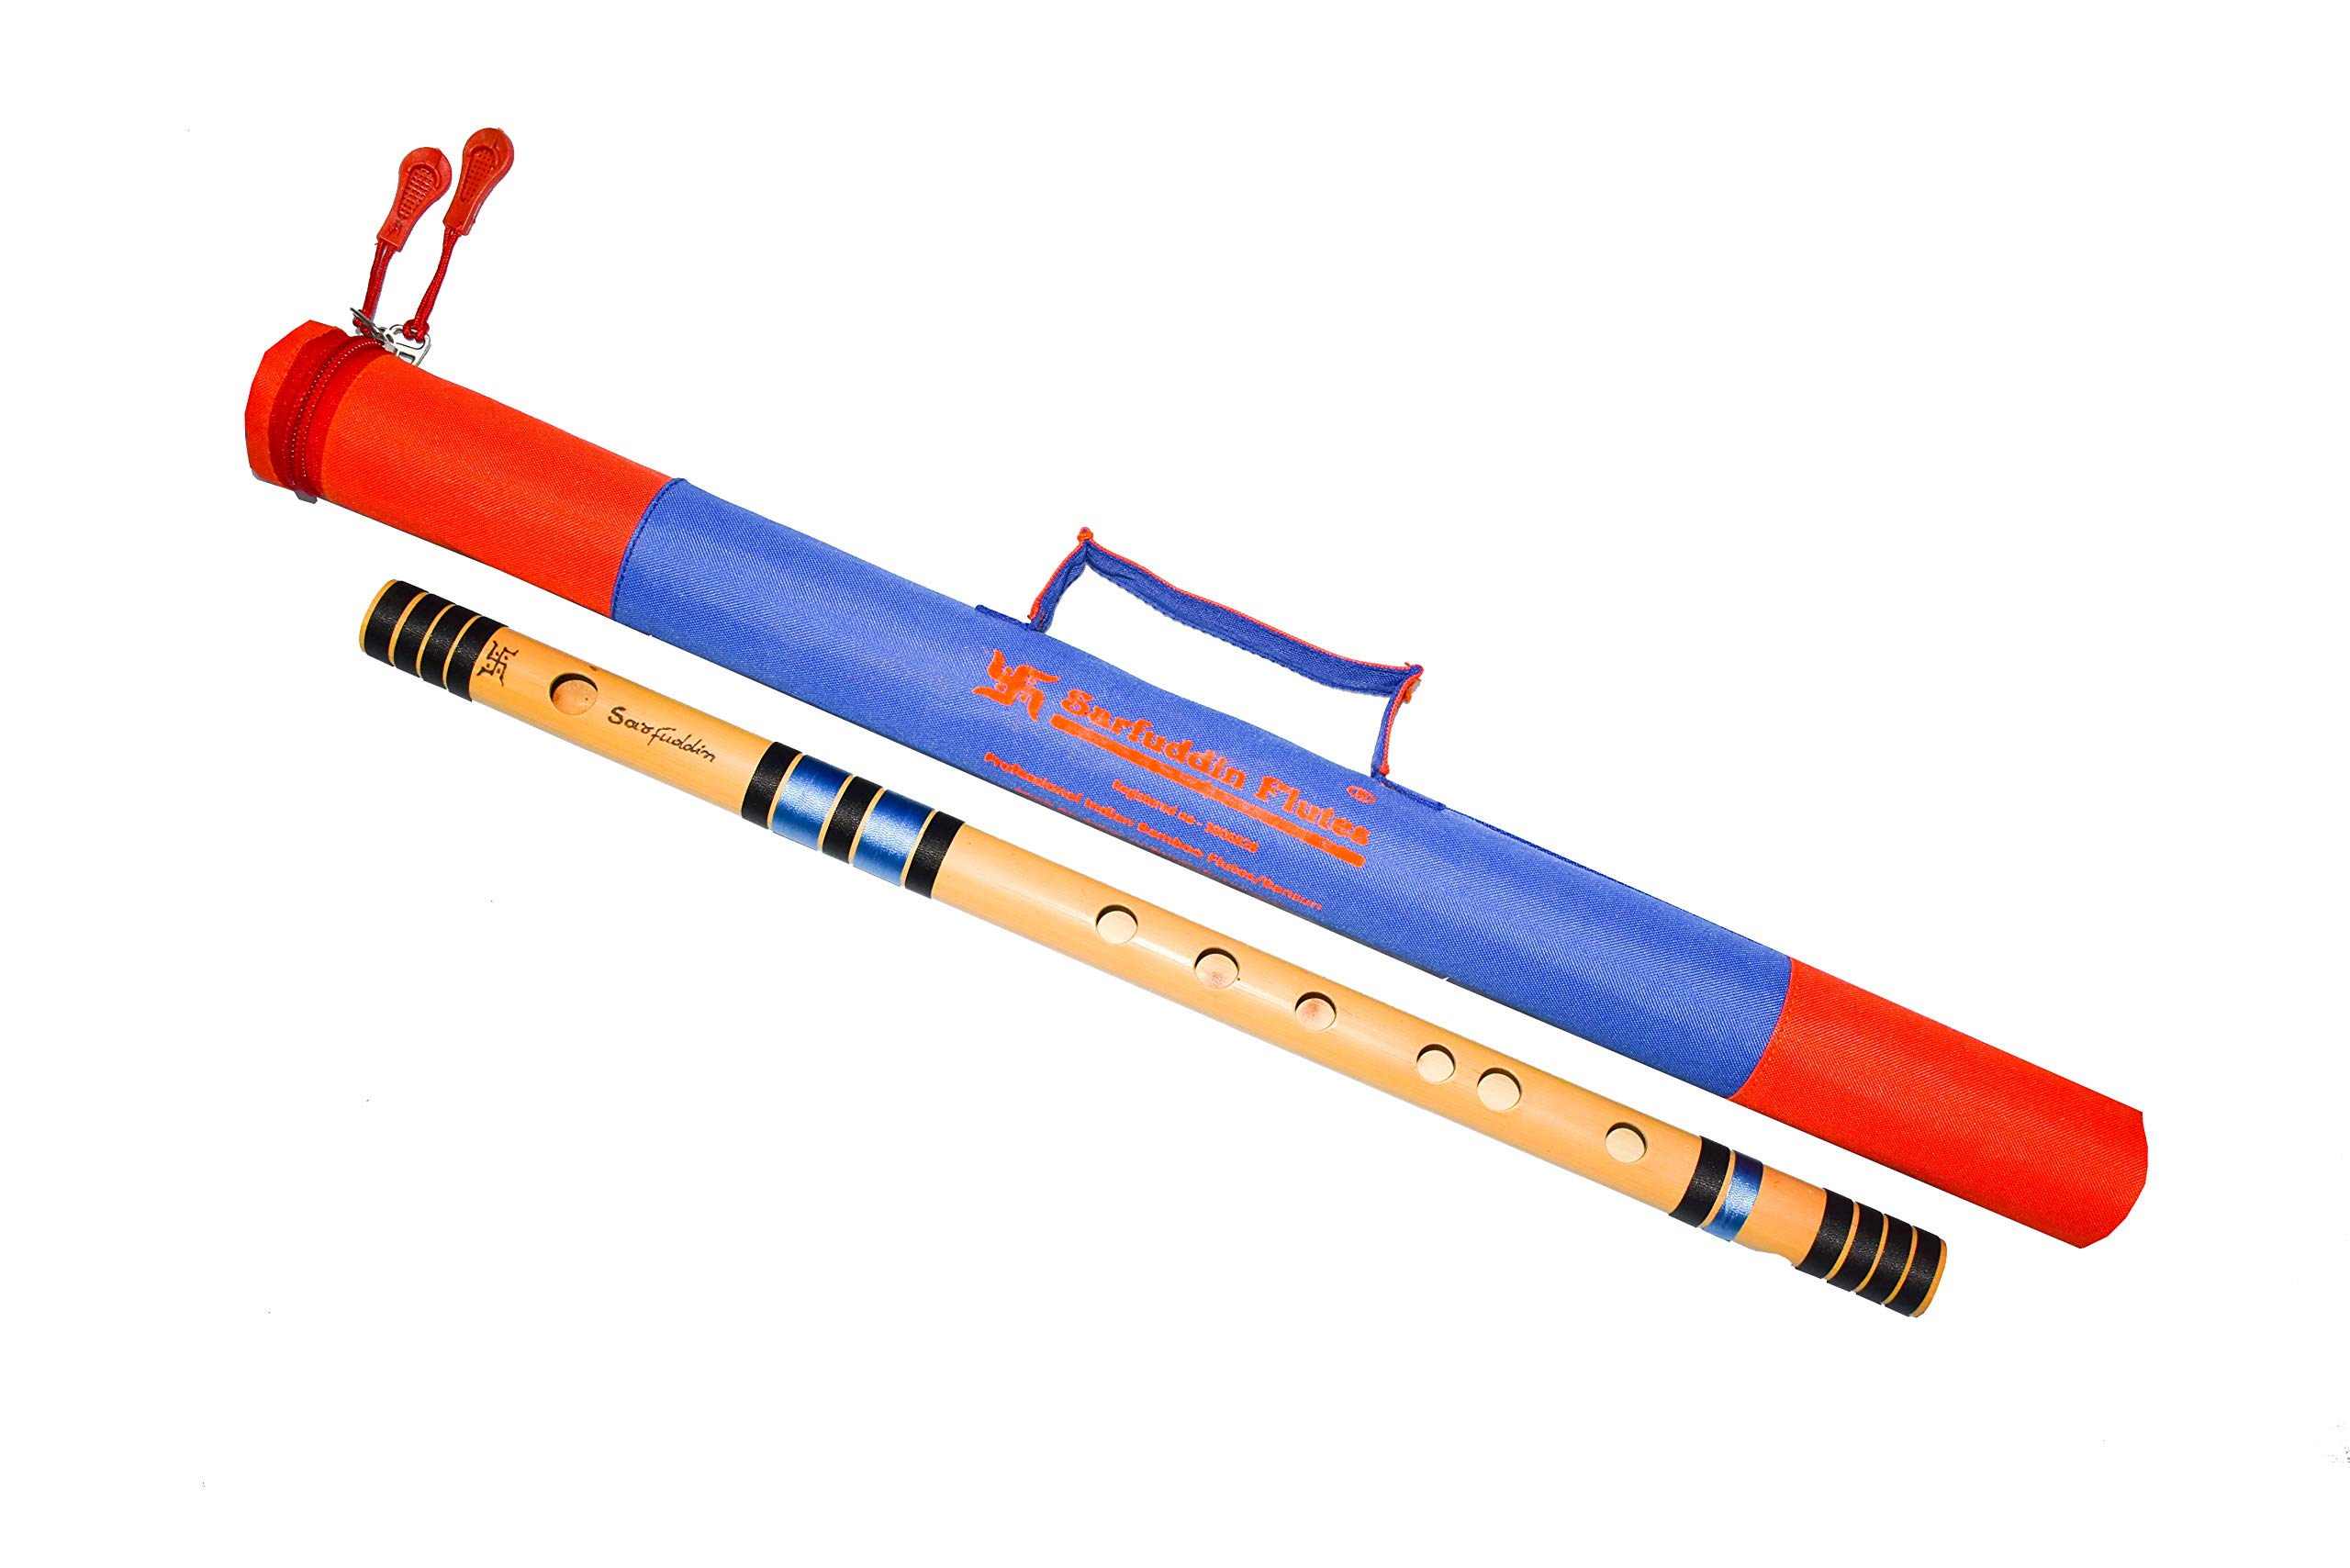 Sarfuddin Flutes, Scale C Sharp Medium 18 Inches Bamboo Flutes/Bansuri. with carry bag FREE. product image